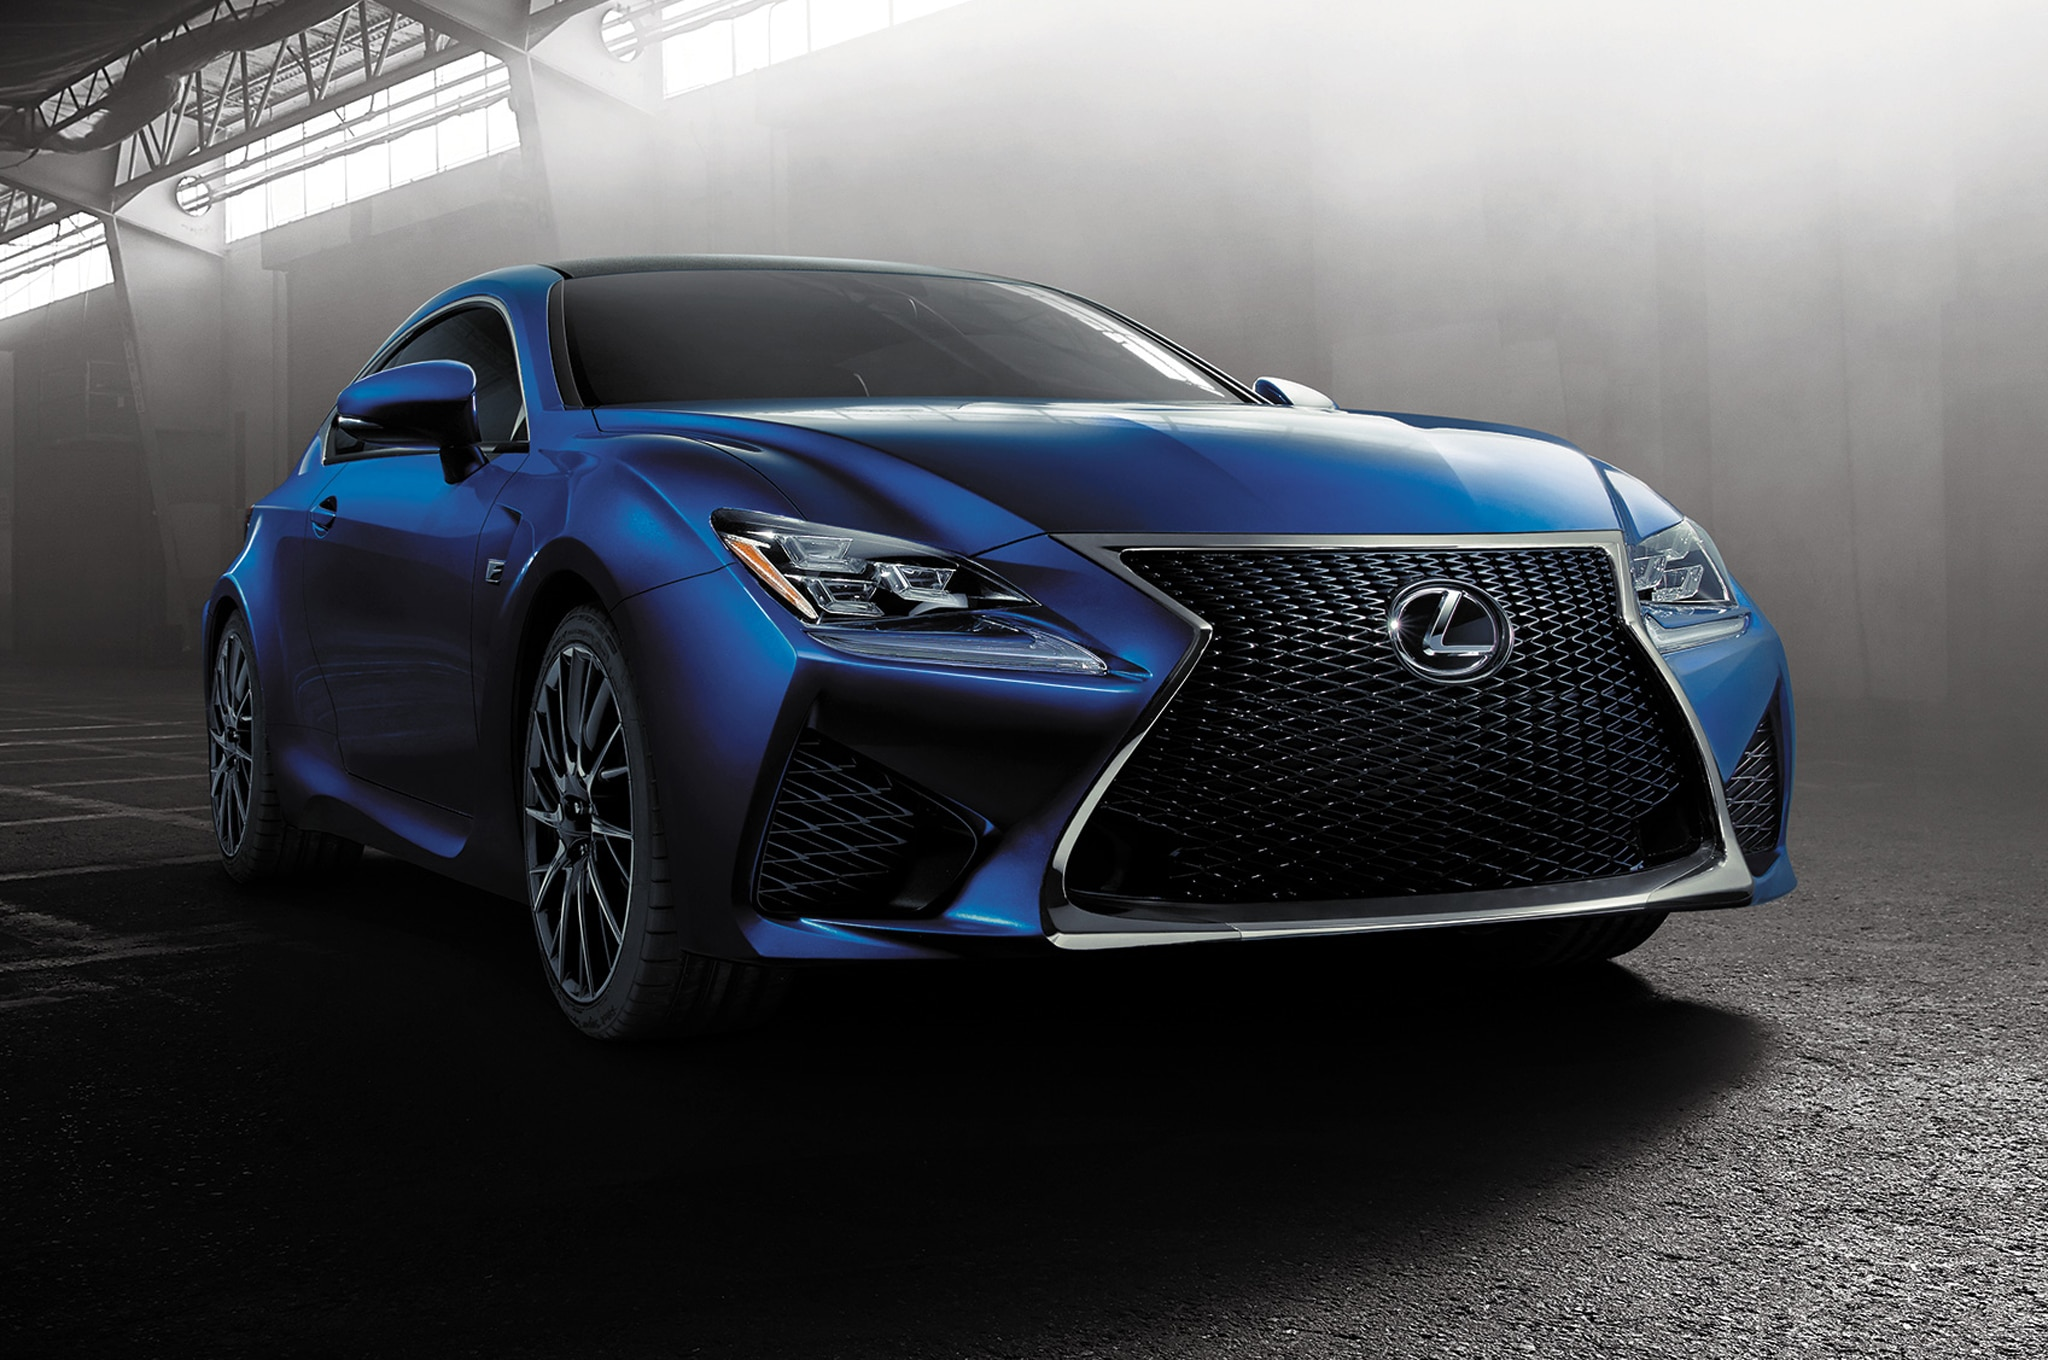 2015 Lexus RC F Coupe Front View1